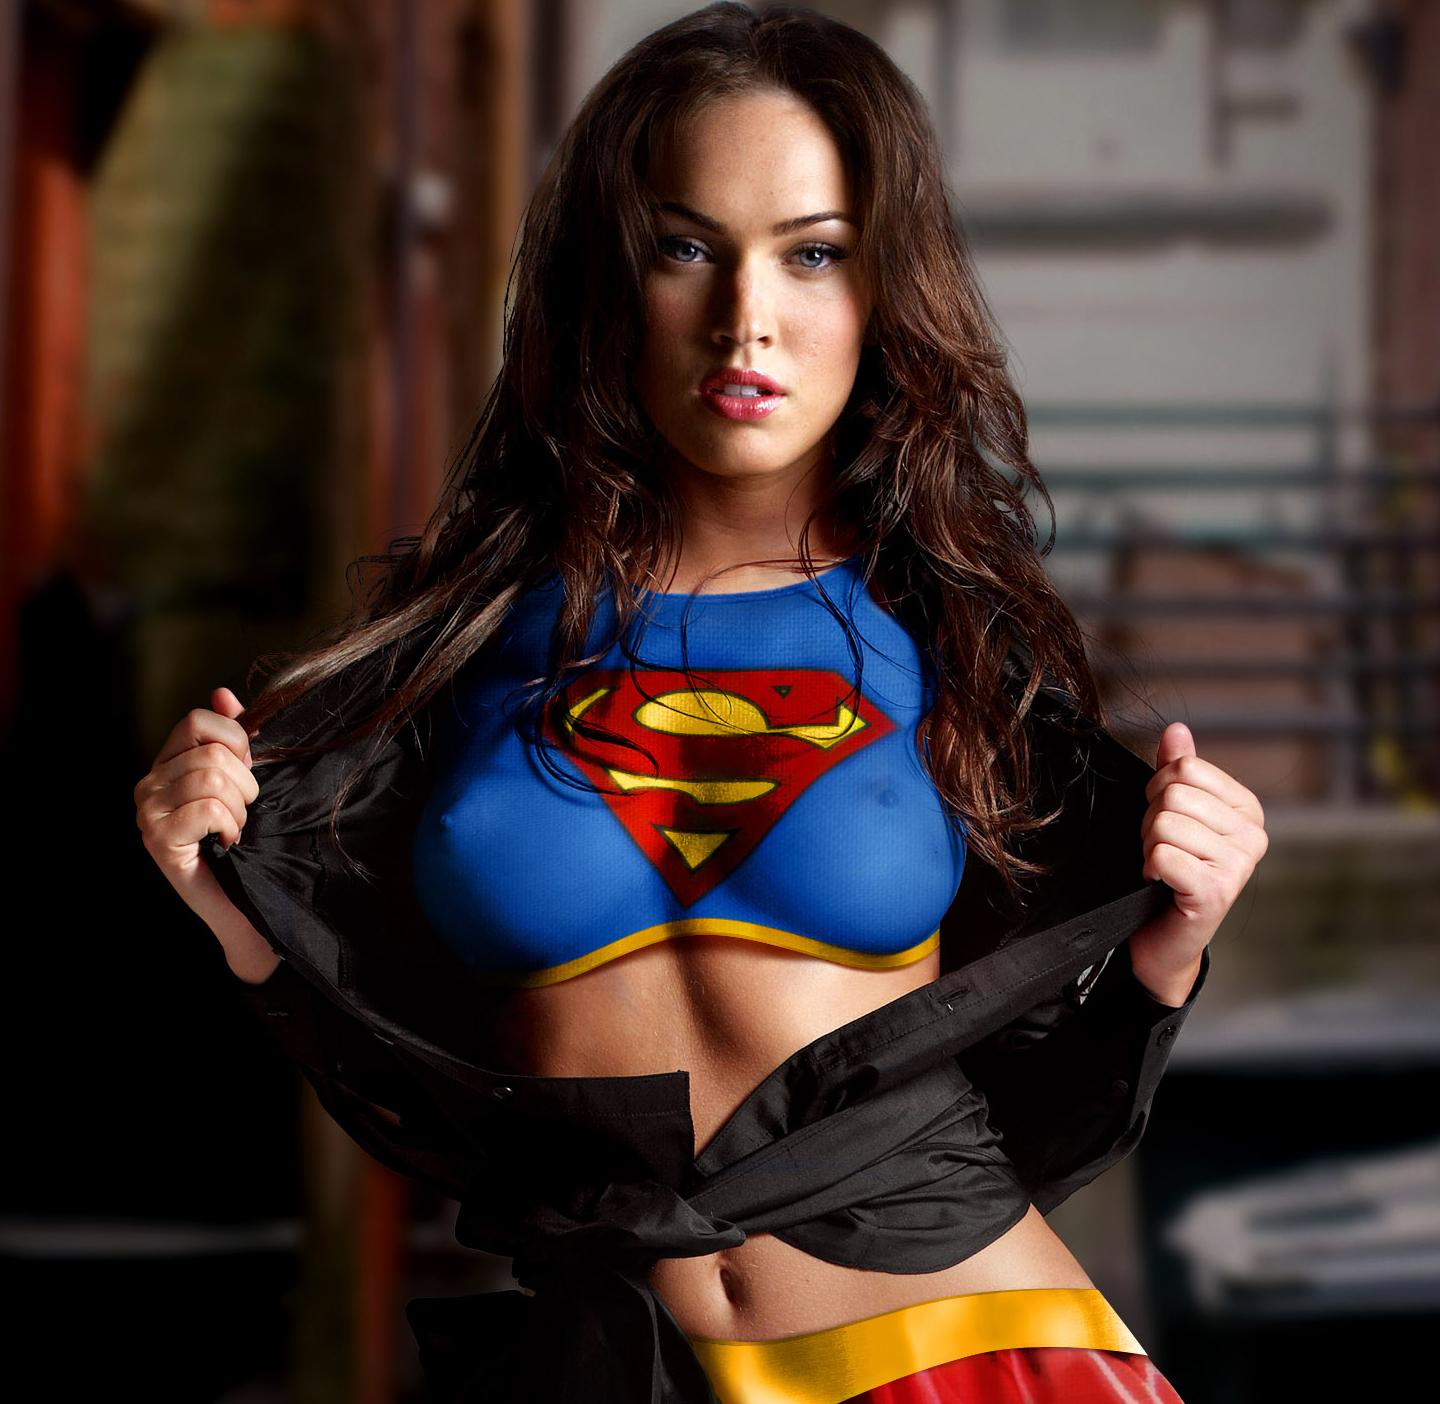 megan fox nude pictures. rating = 8.80/10